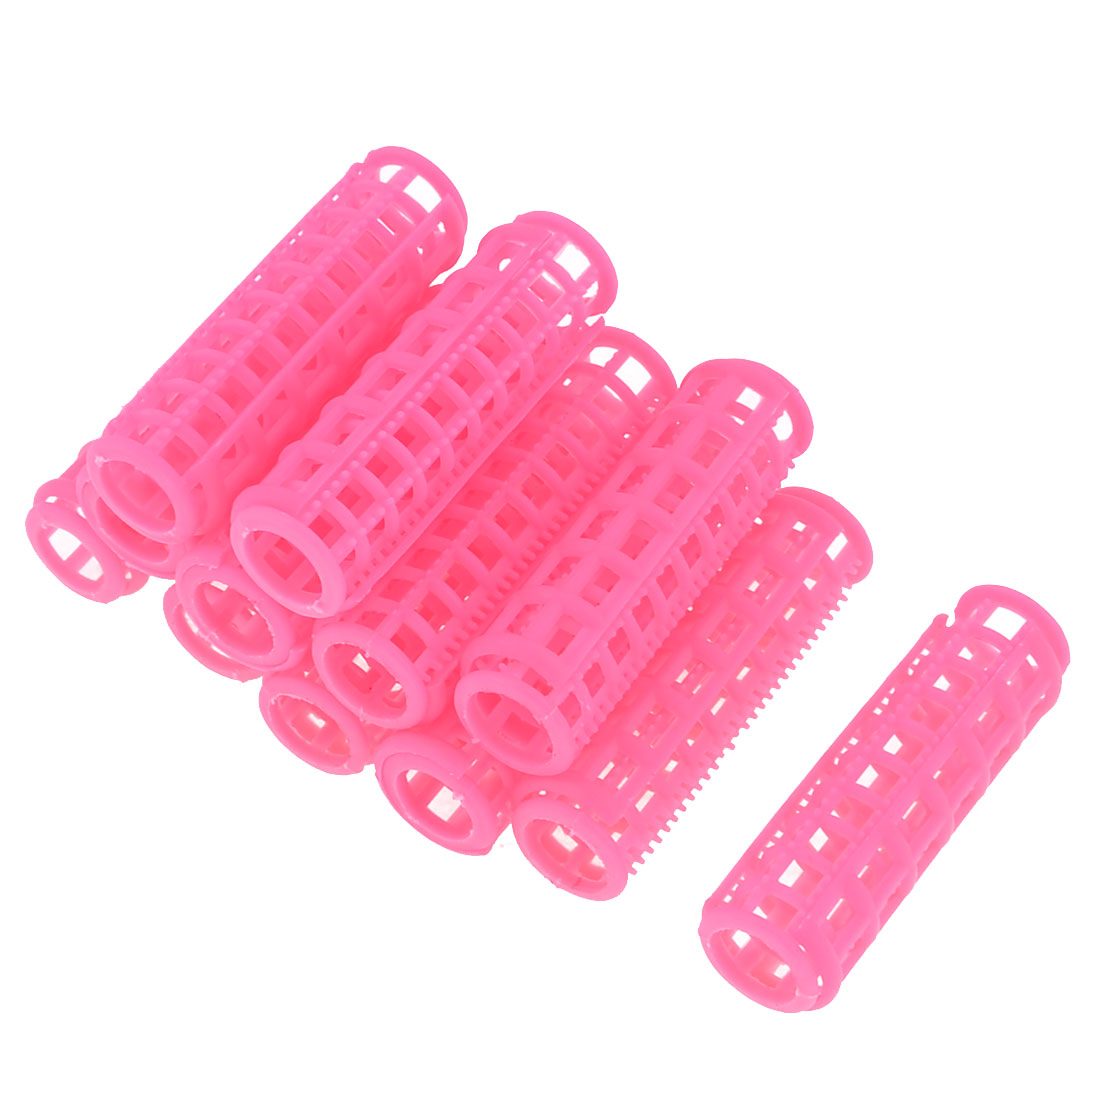 12 Pieces Hair Pink Plastic Cylinder Roller Curlers Clips for Woman